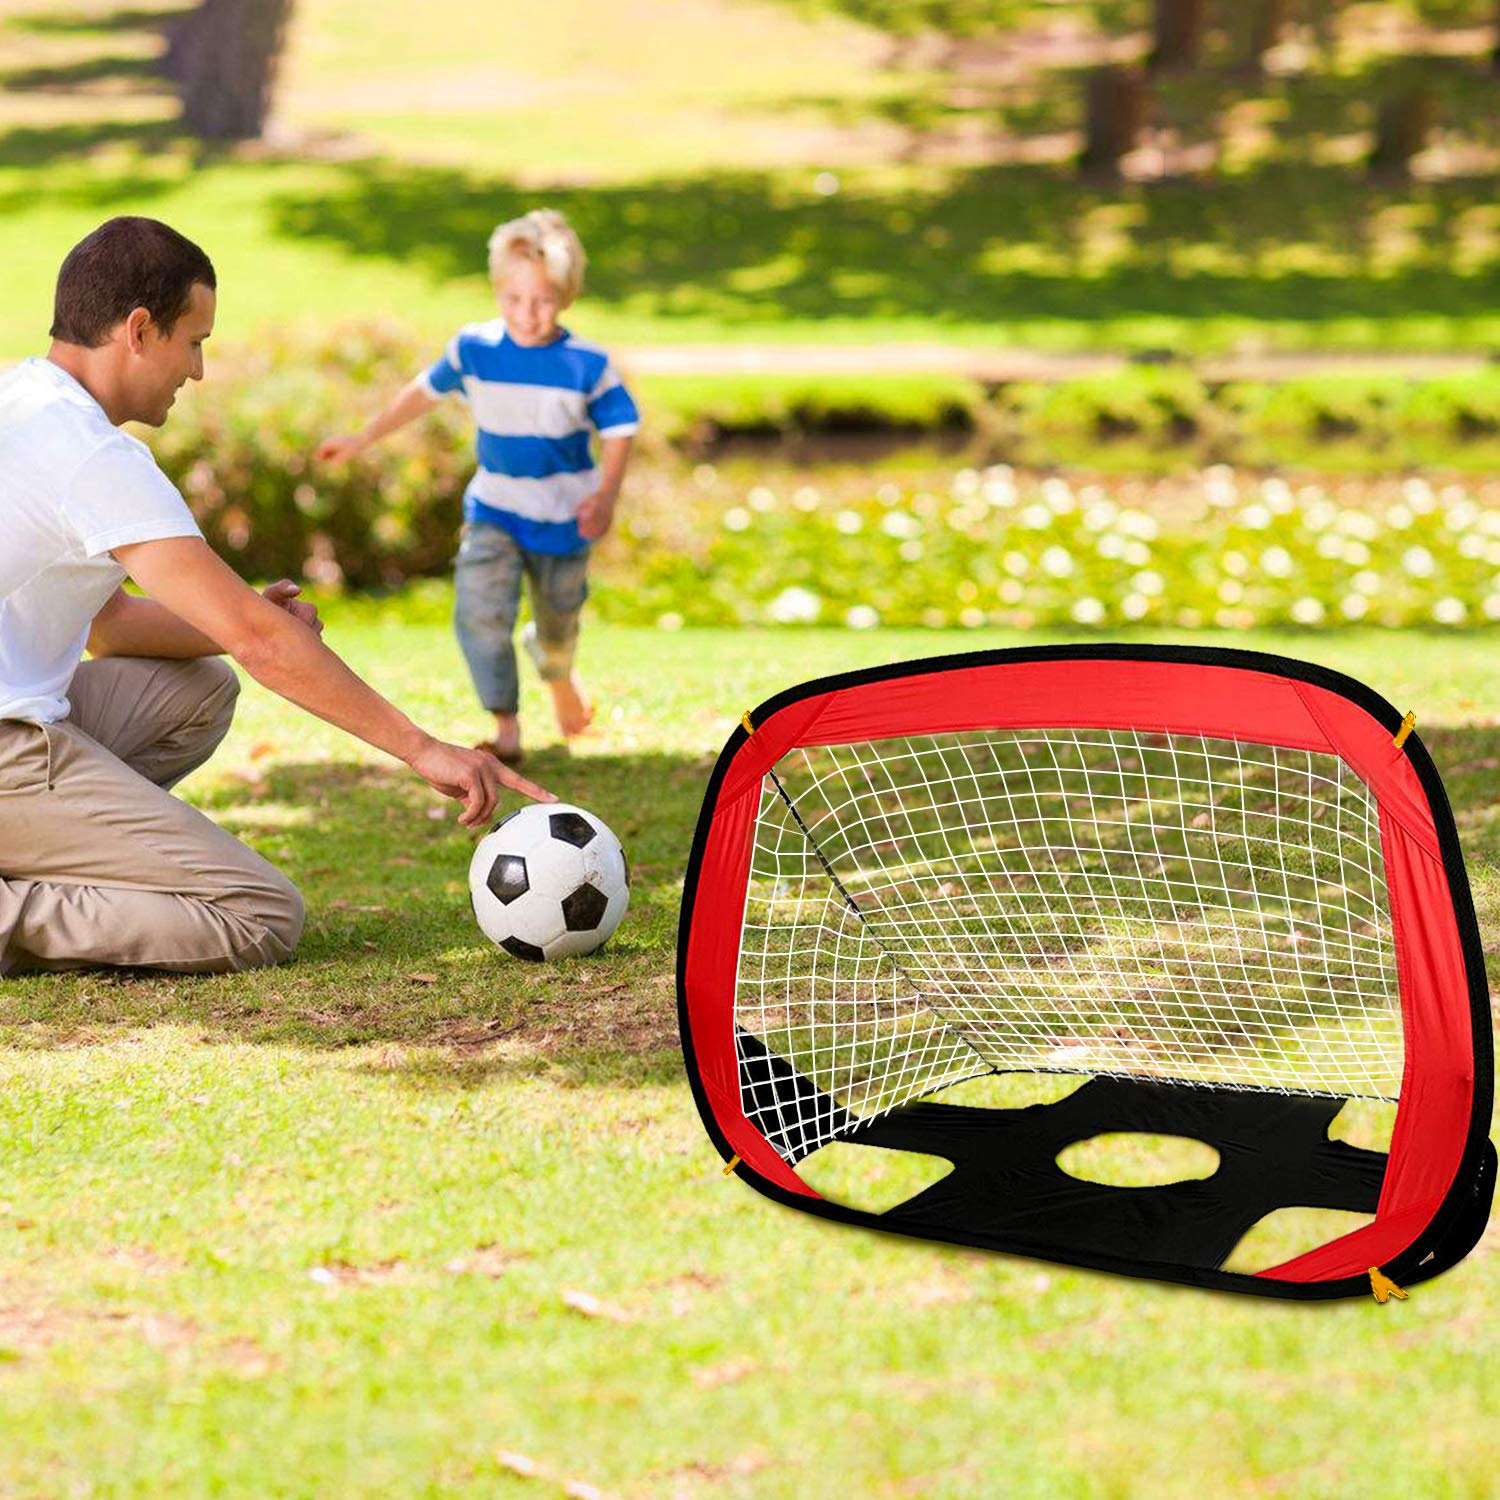 OUTAD Foldable Football Nets/Soccer Goal/Goals Post Football Goal Kids 80*110*80cm 2 in 1 Pop Up Goal and Target Shot for Indoor & Outdoor Play